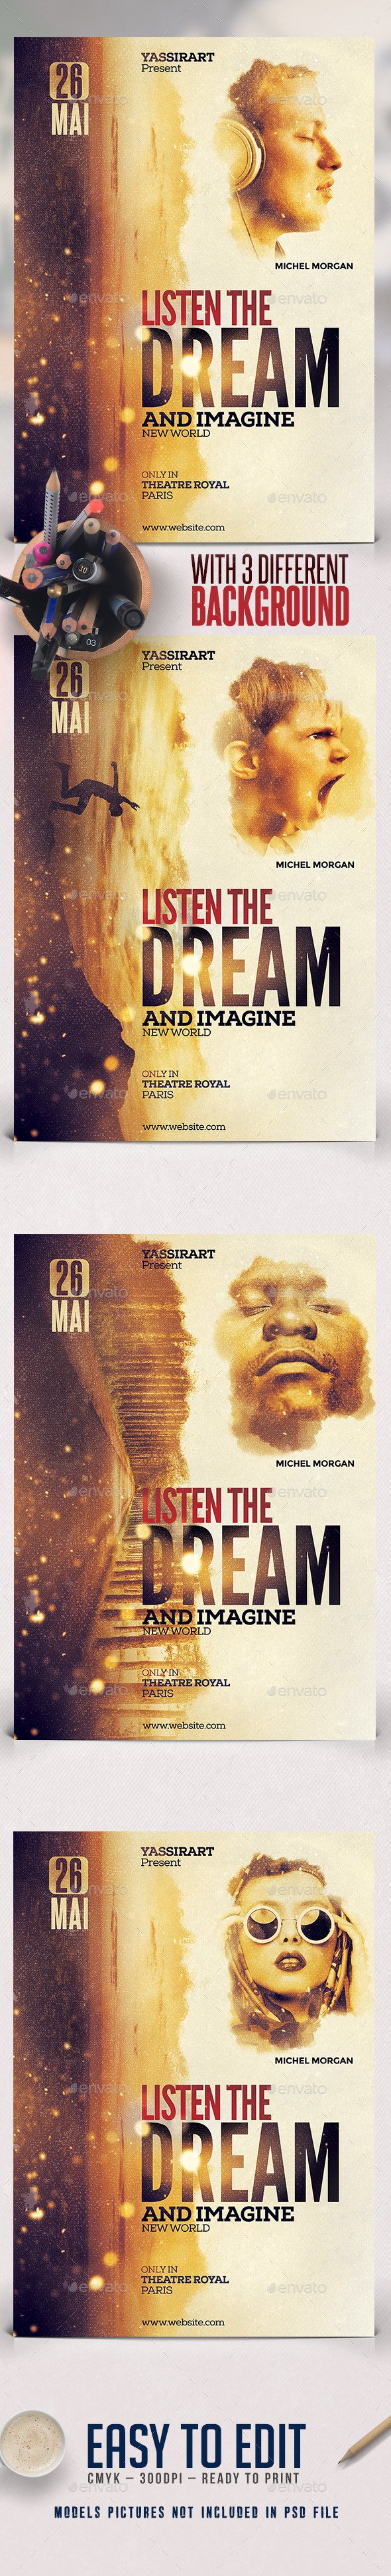 A3 Dream Film Poster Template - Miscellaneous Events